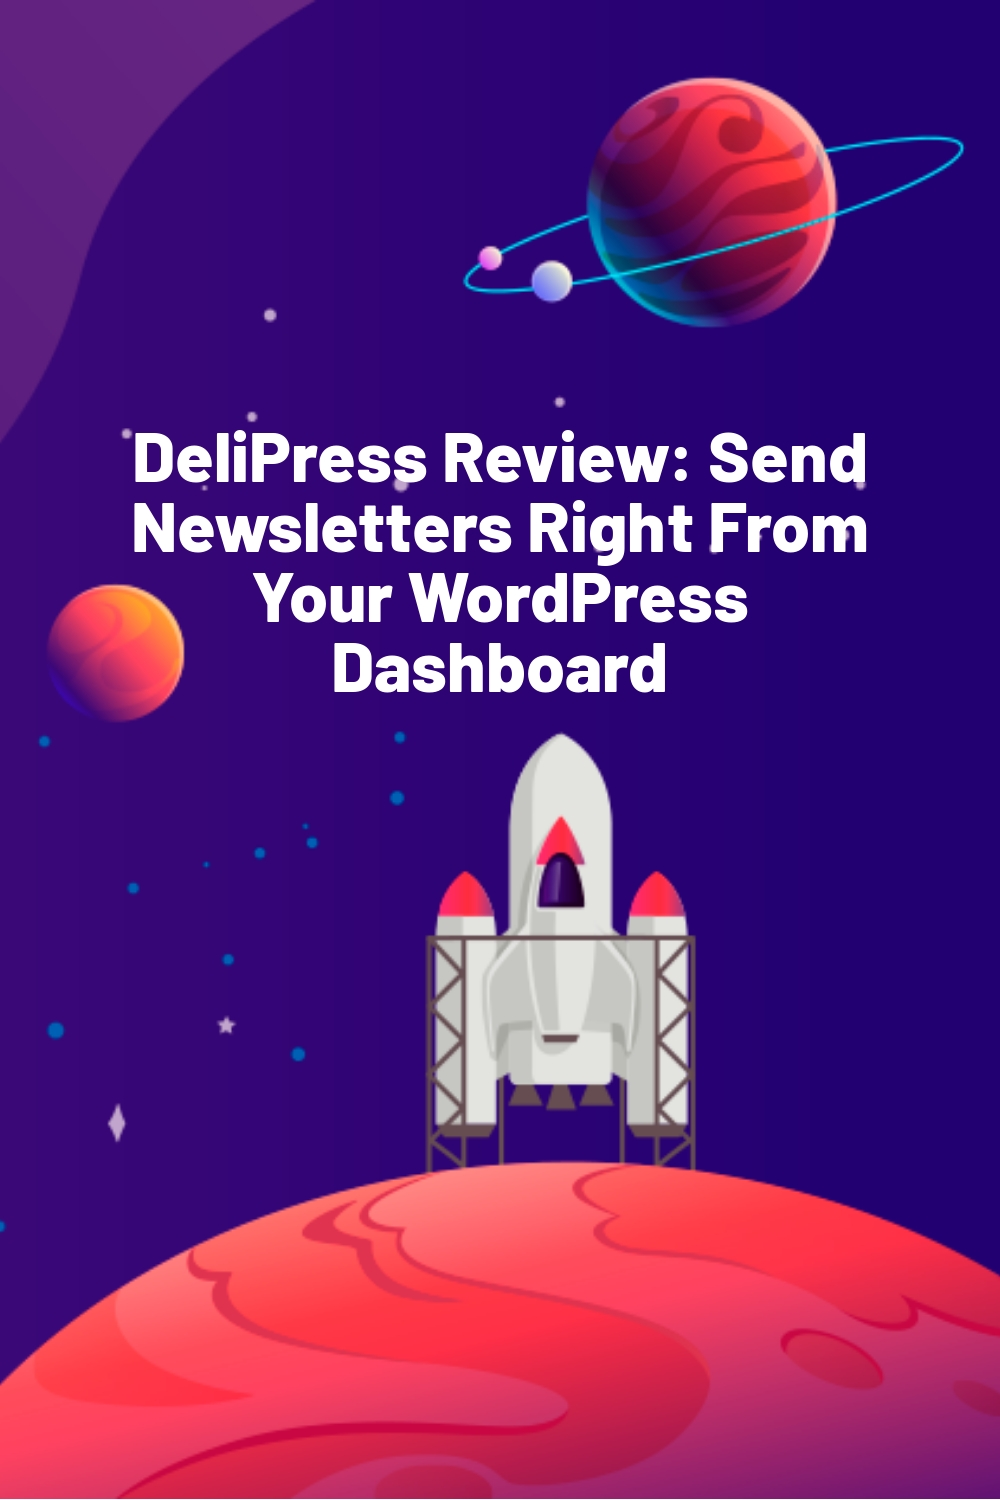 DeliPress Review: Send Newsletters Right From Your WordPress Dashboard